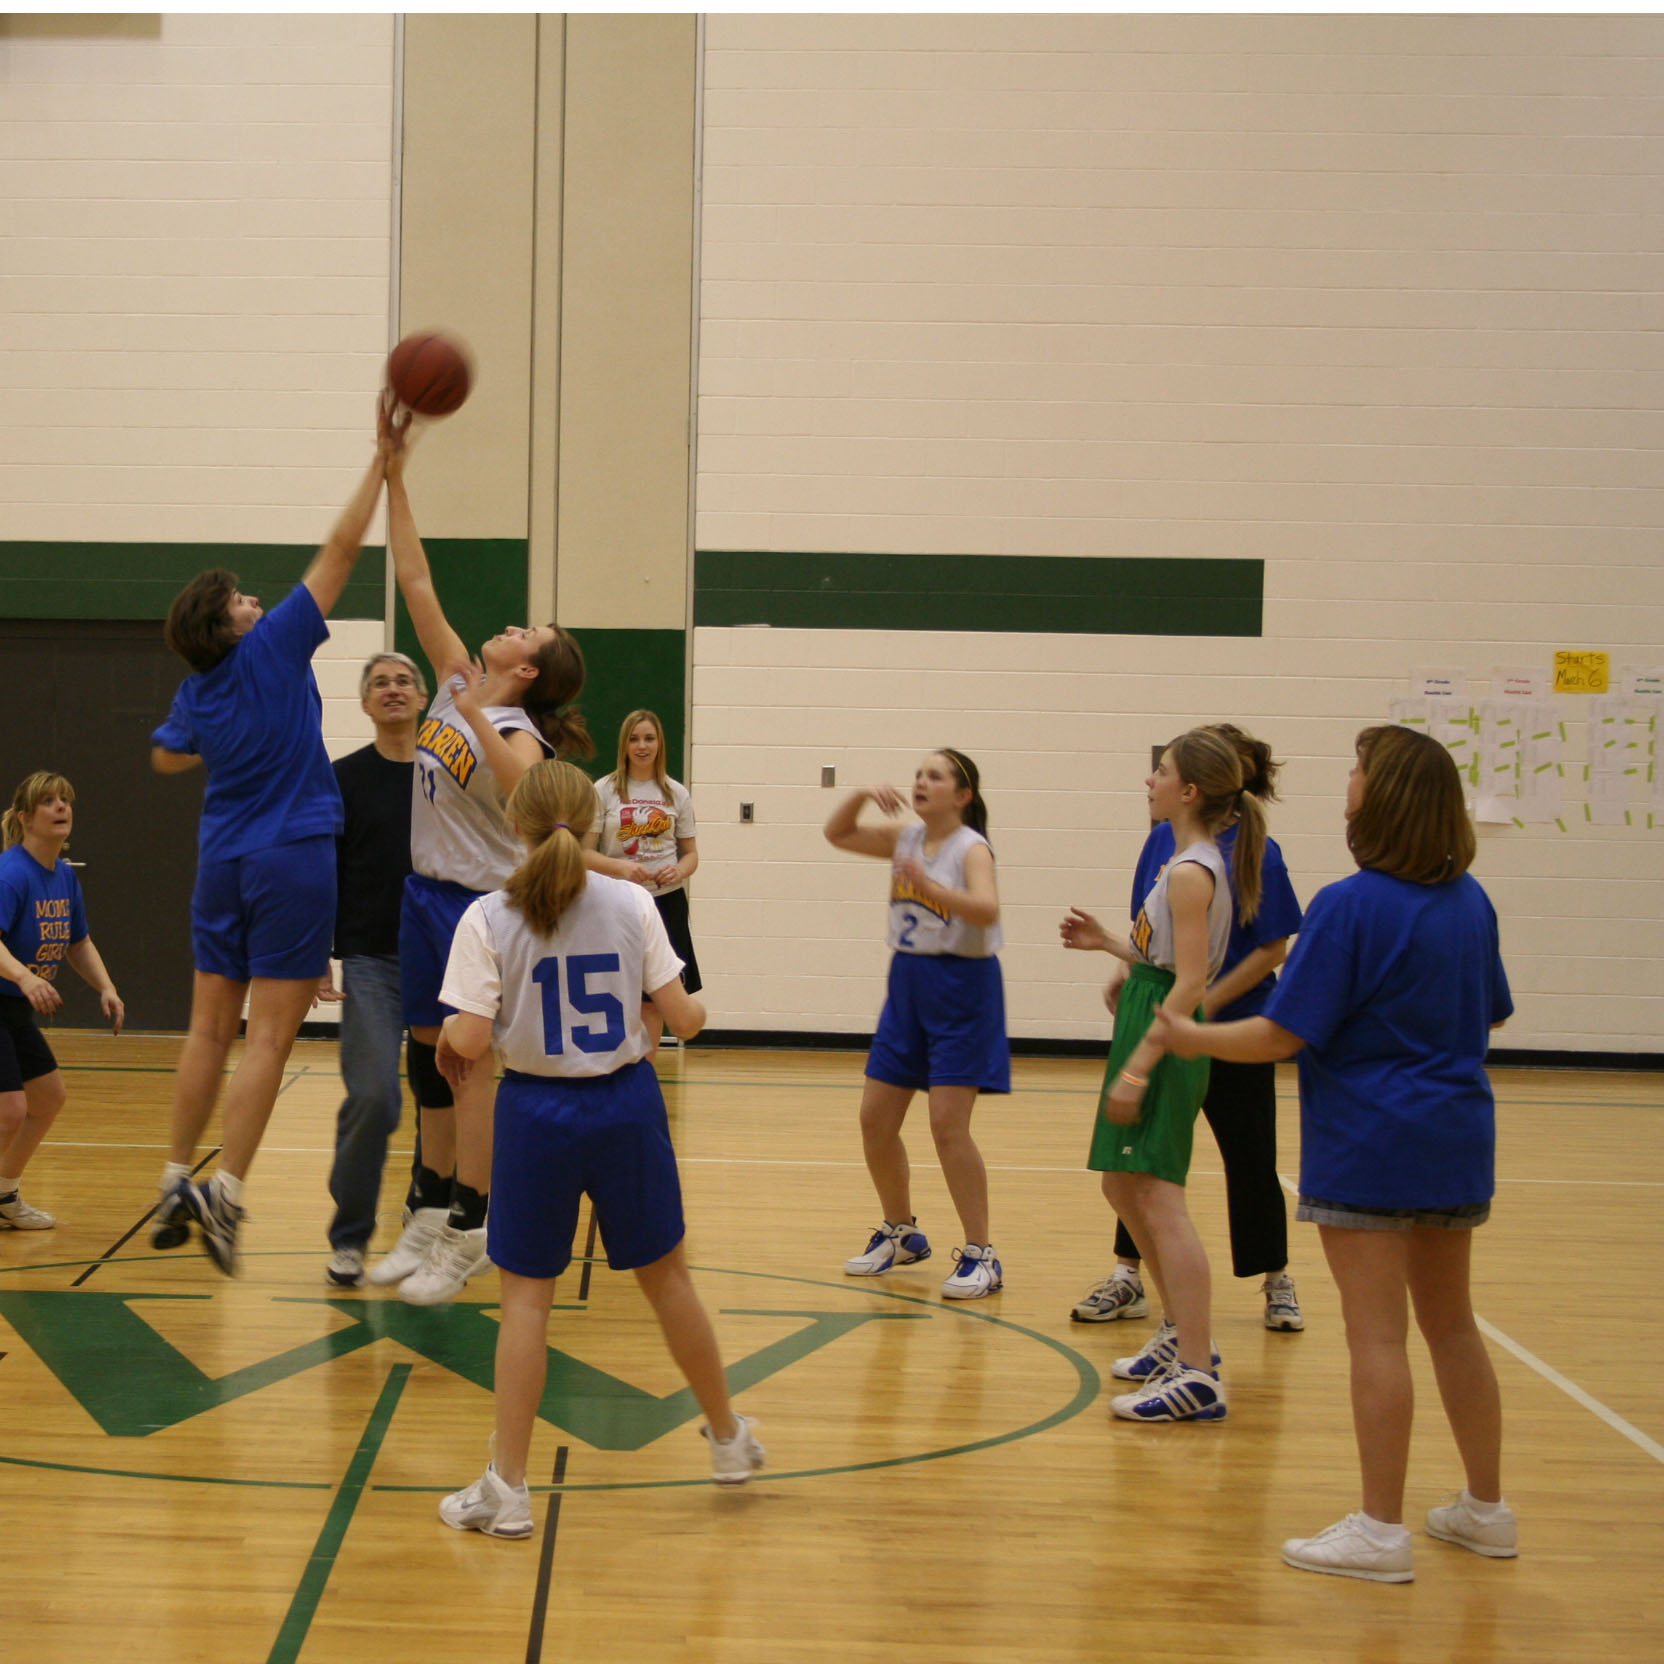 Warren Township High School Intramural Basketball League